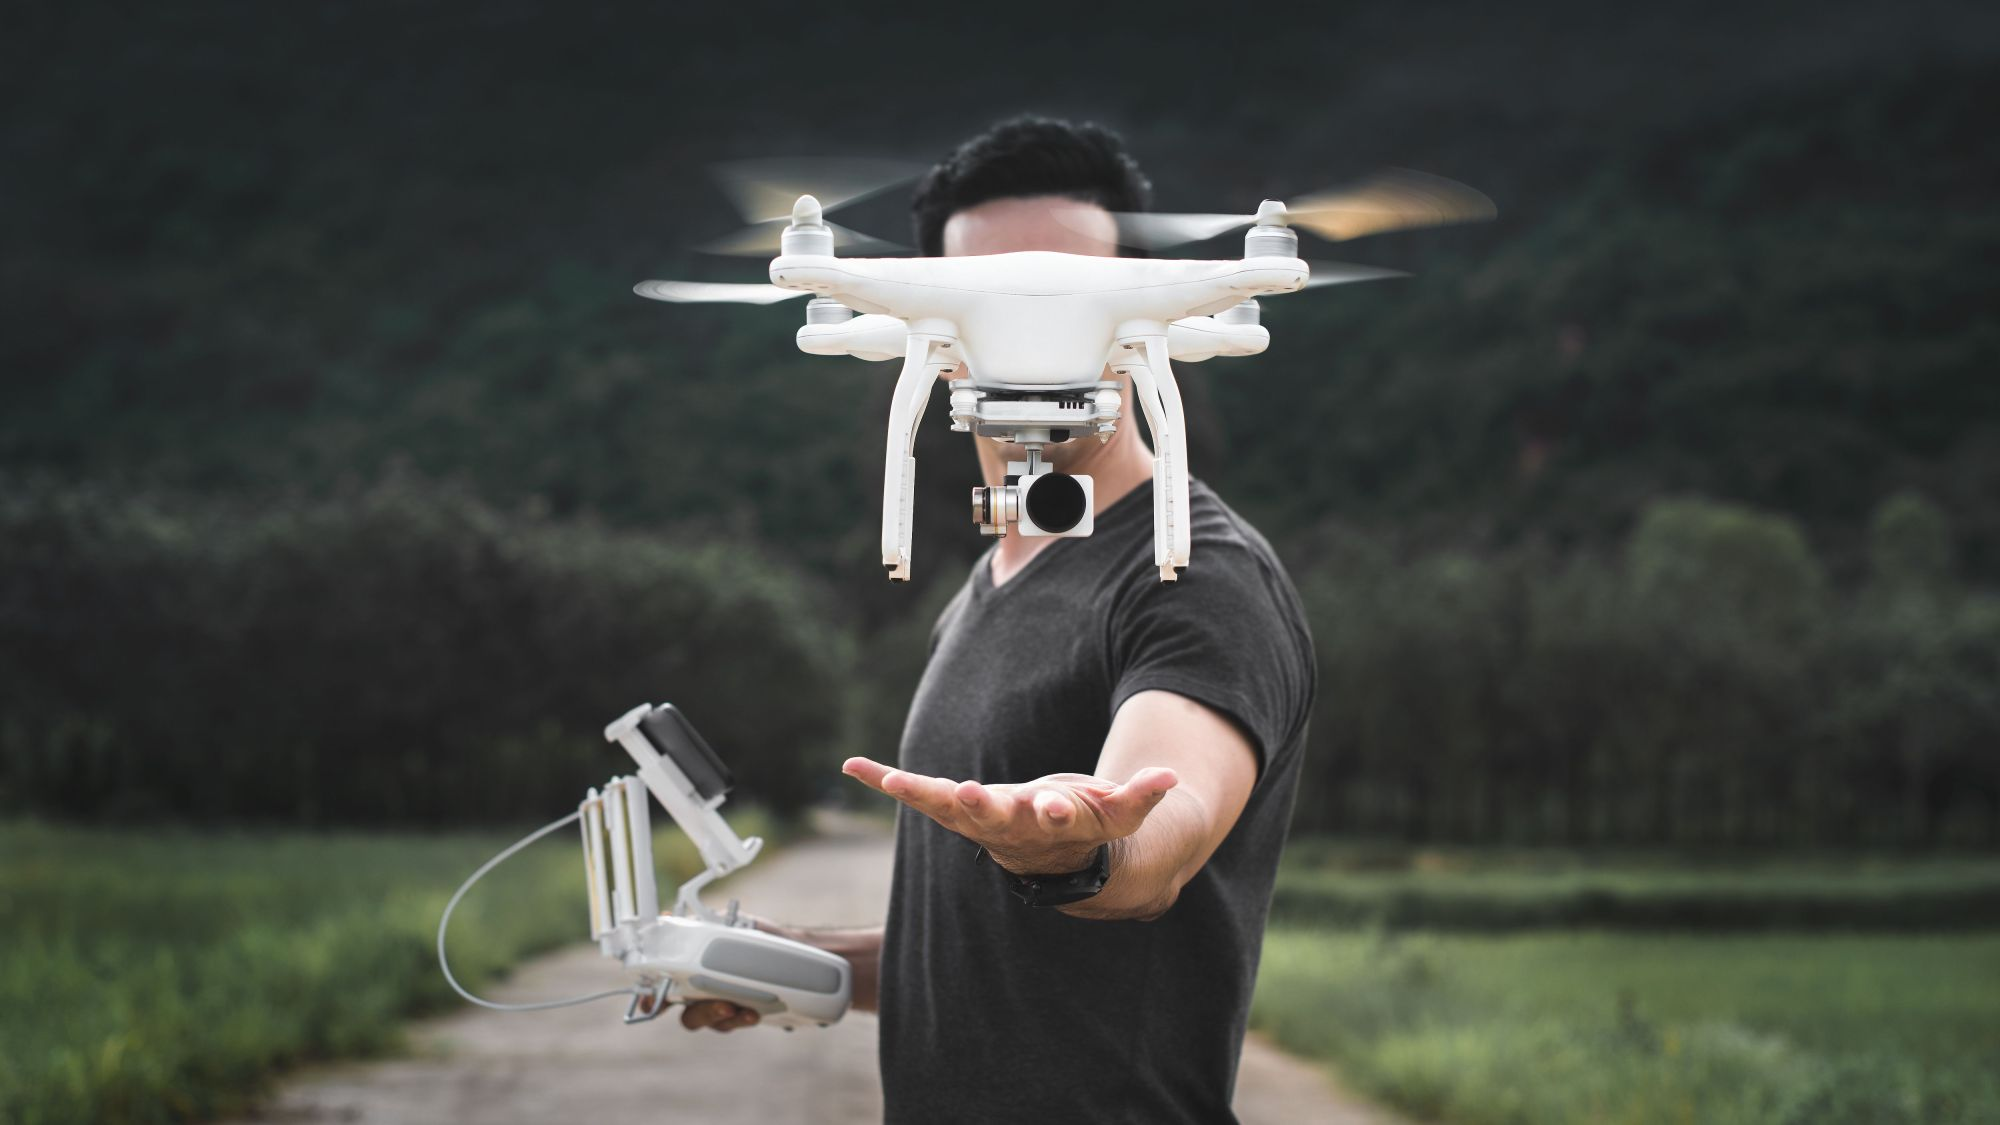 What drones are made of?